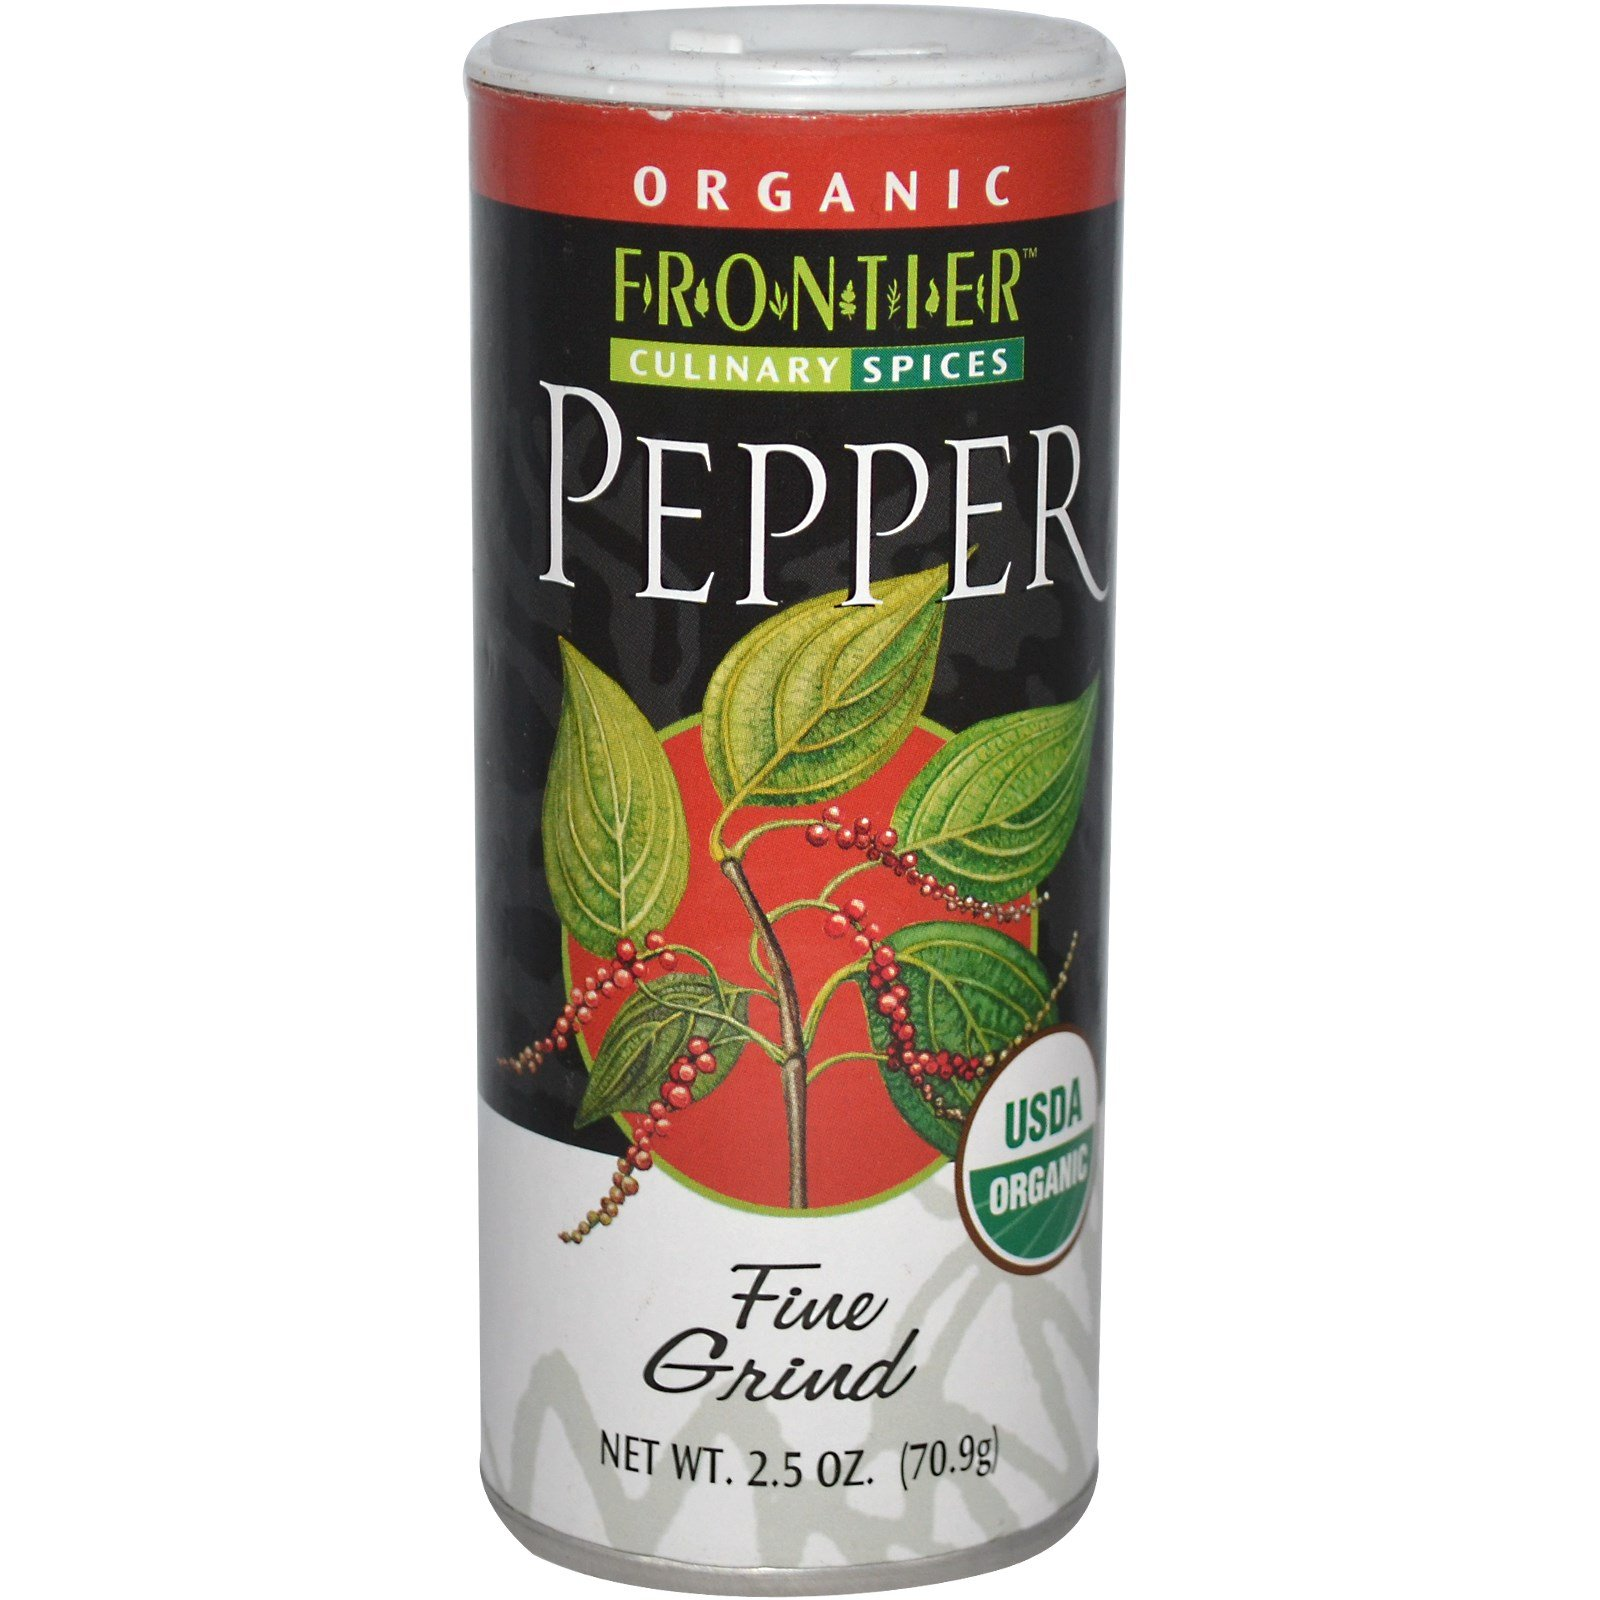 Frontier Natural Products, Organic Black Pepper, Fine Grind, 2.5 oz (70.9 g)